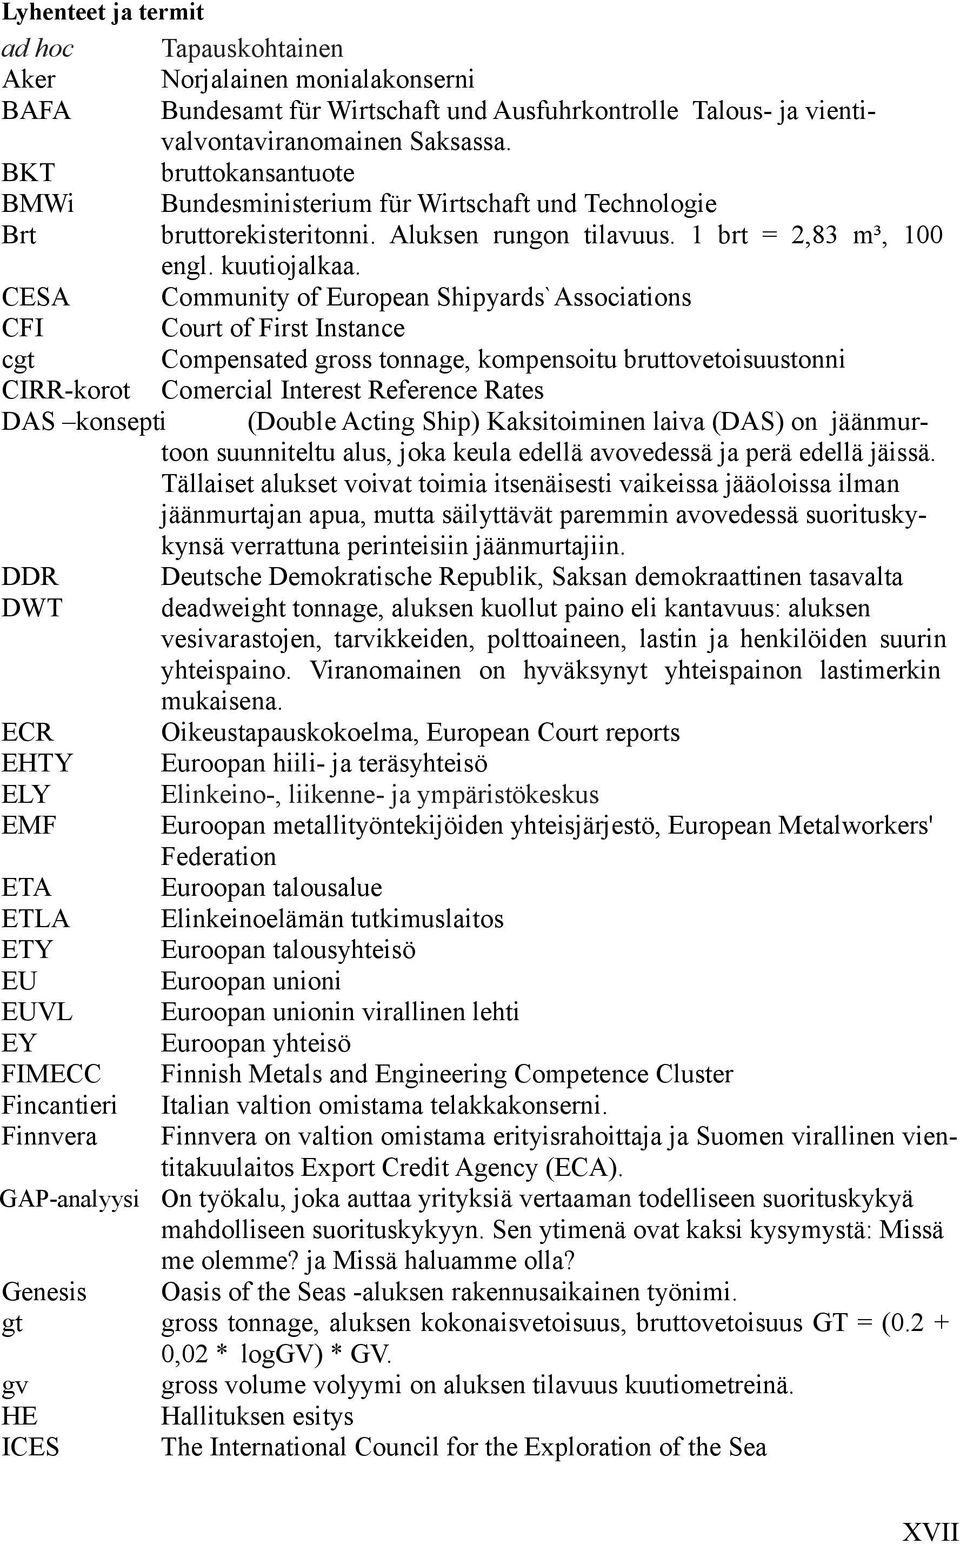 CESA Community of European Shipyards`Associations CFI Court of First Instance cgt Compensated gross tonnage, kompensoitu bruttovetoisuustonni CIRR-korot Comercial Interest Reference Rates DAS